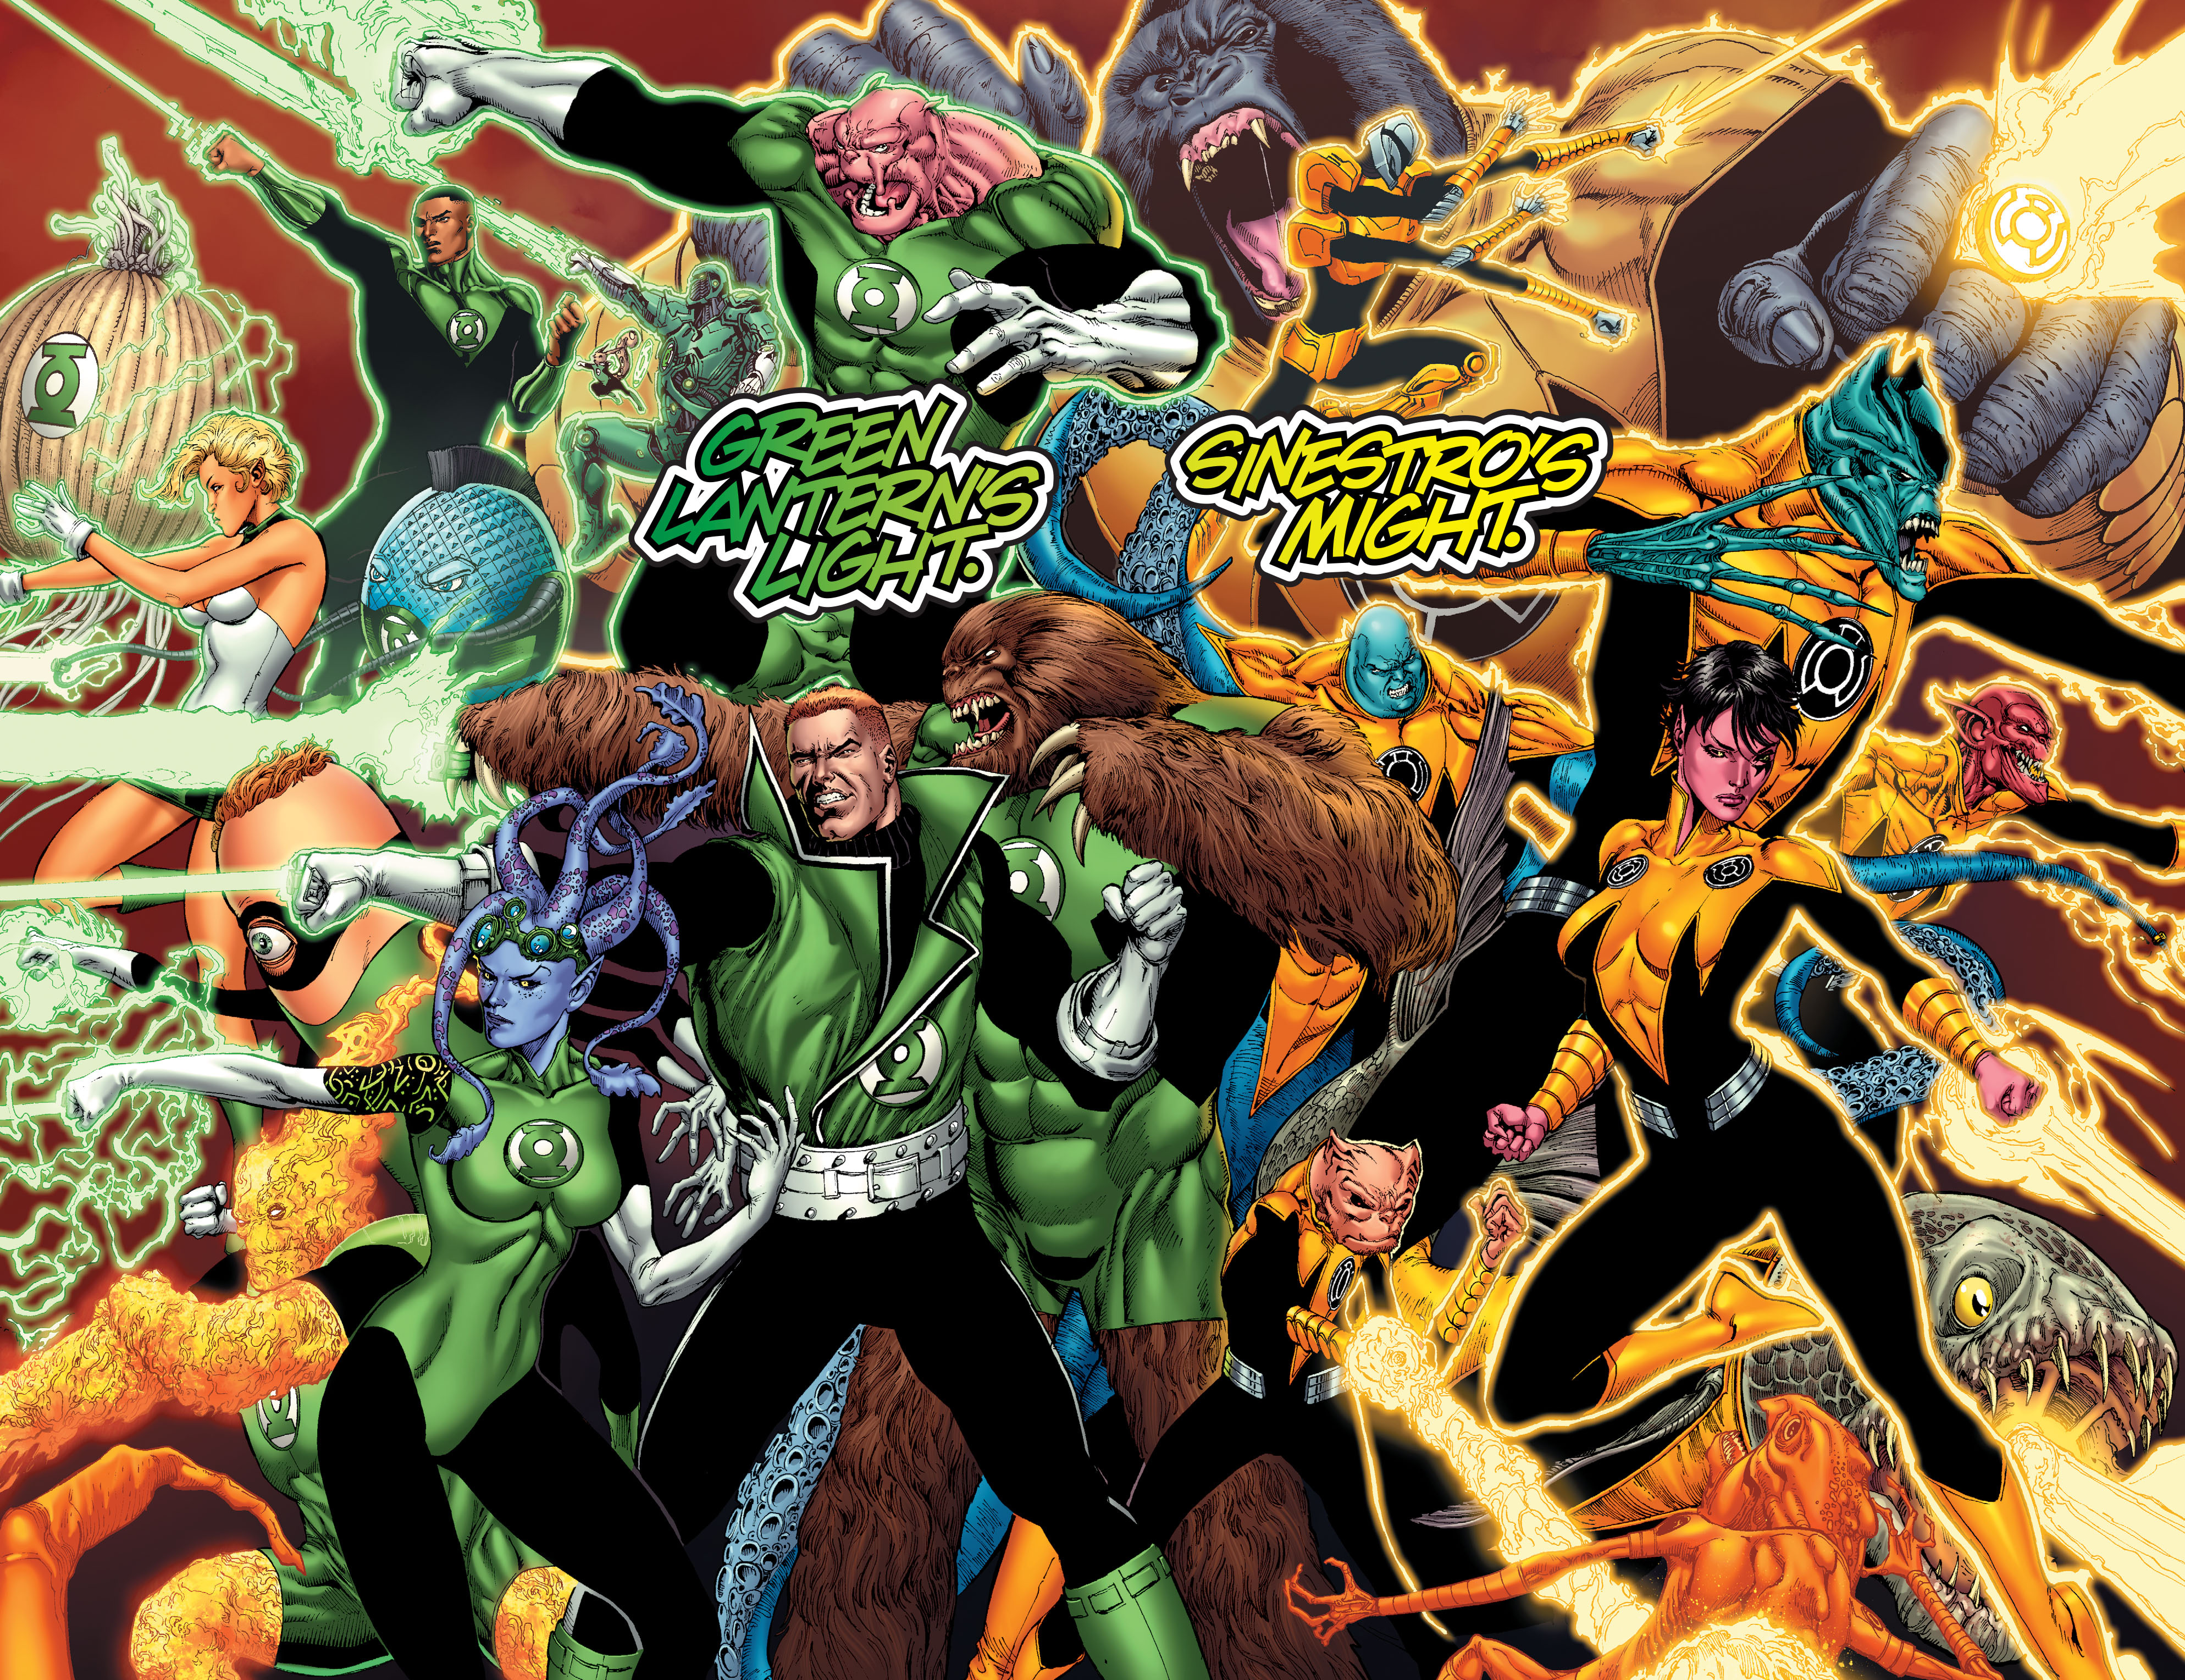 Warner Bros.' GREEN LANTERN CORPS Will Be 'LETHAL WEAPON in Space'